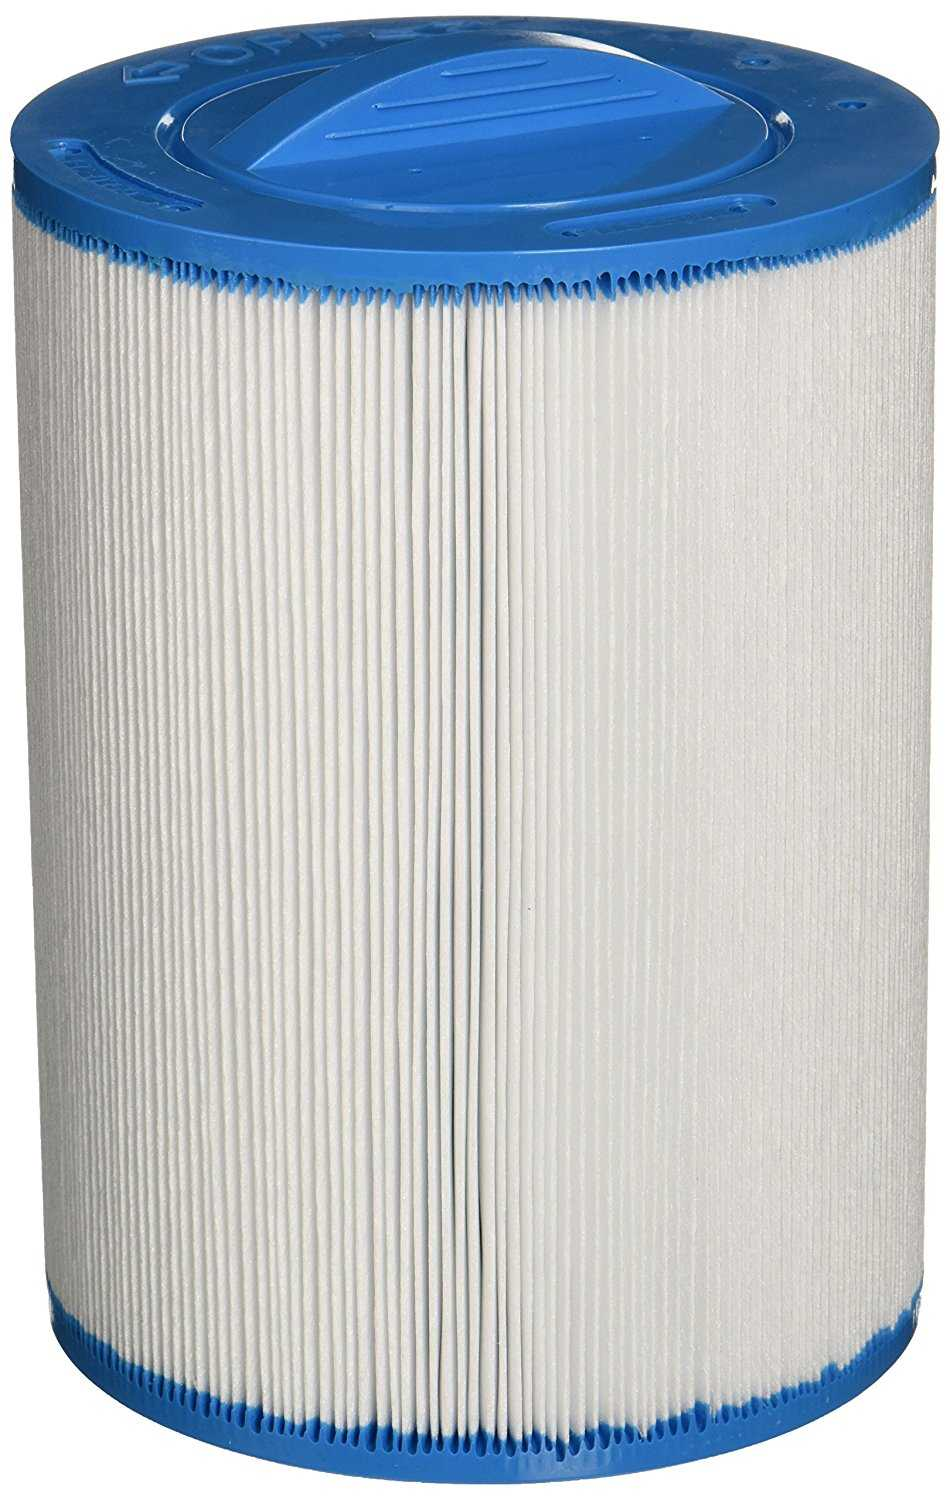 Antimicrobial Replacement Filter Cartridge